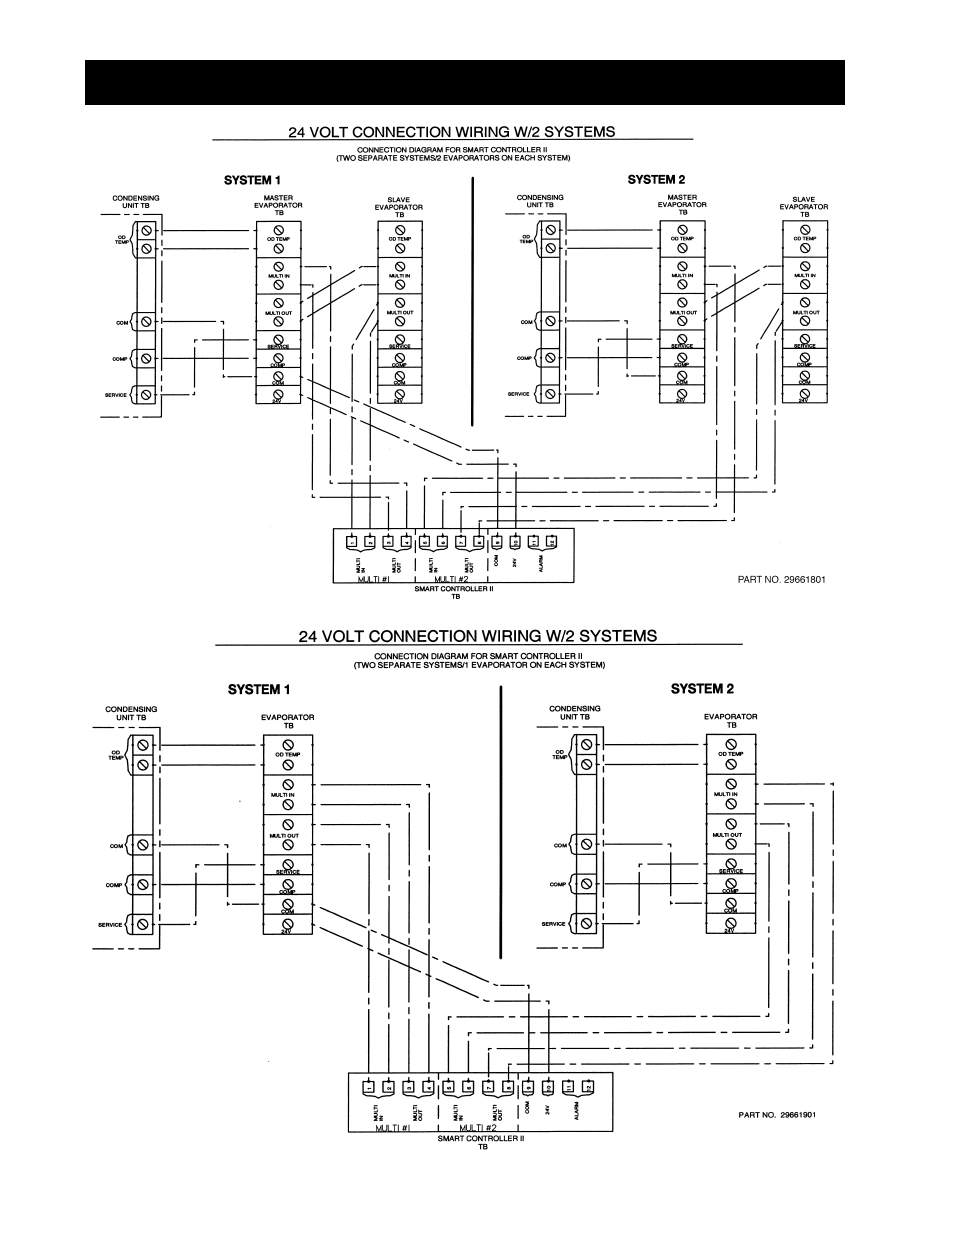 ssr blitz pro wiring diagram wiring diagramssr blitz pro wiring diagram best wiring librarylance 50cc scooter wiring diagram kymco scooter parts ssr